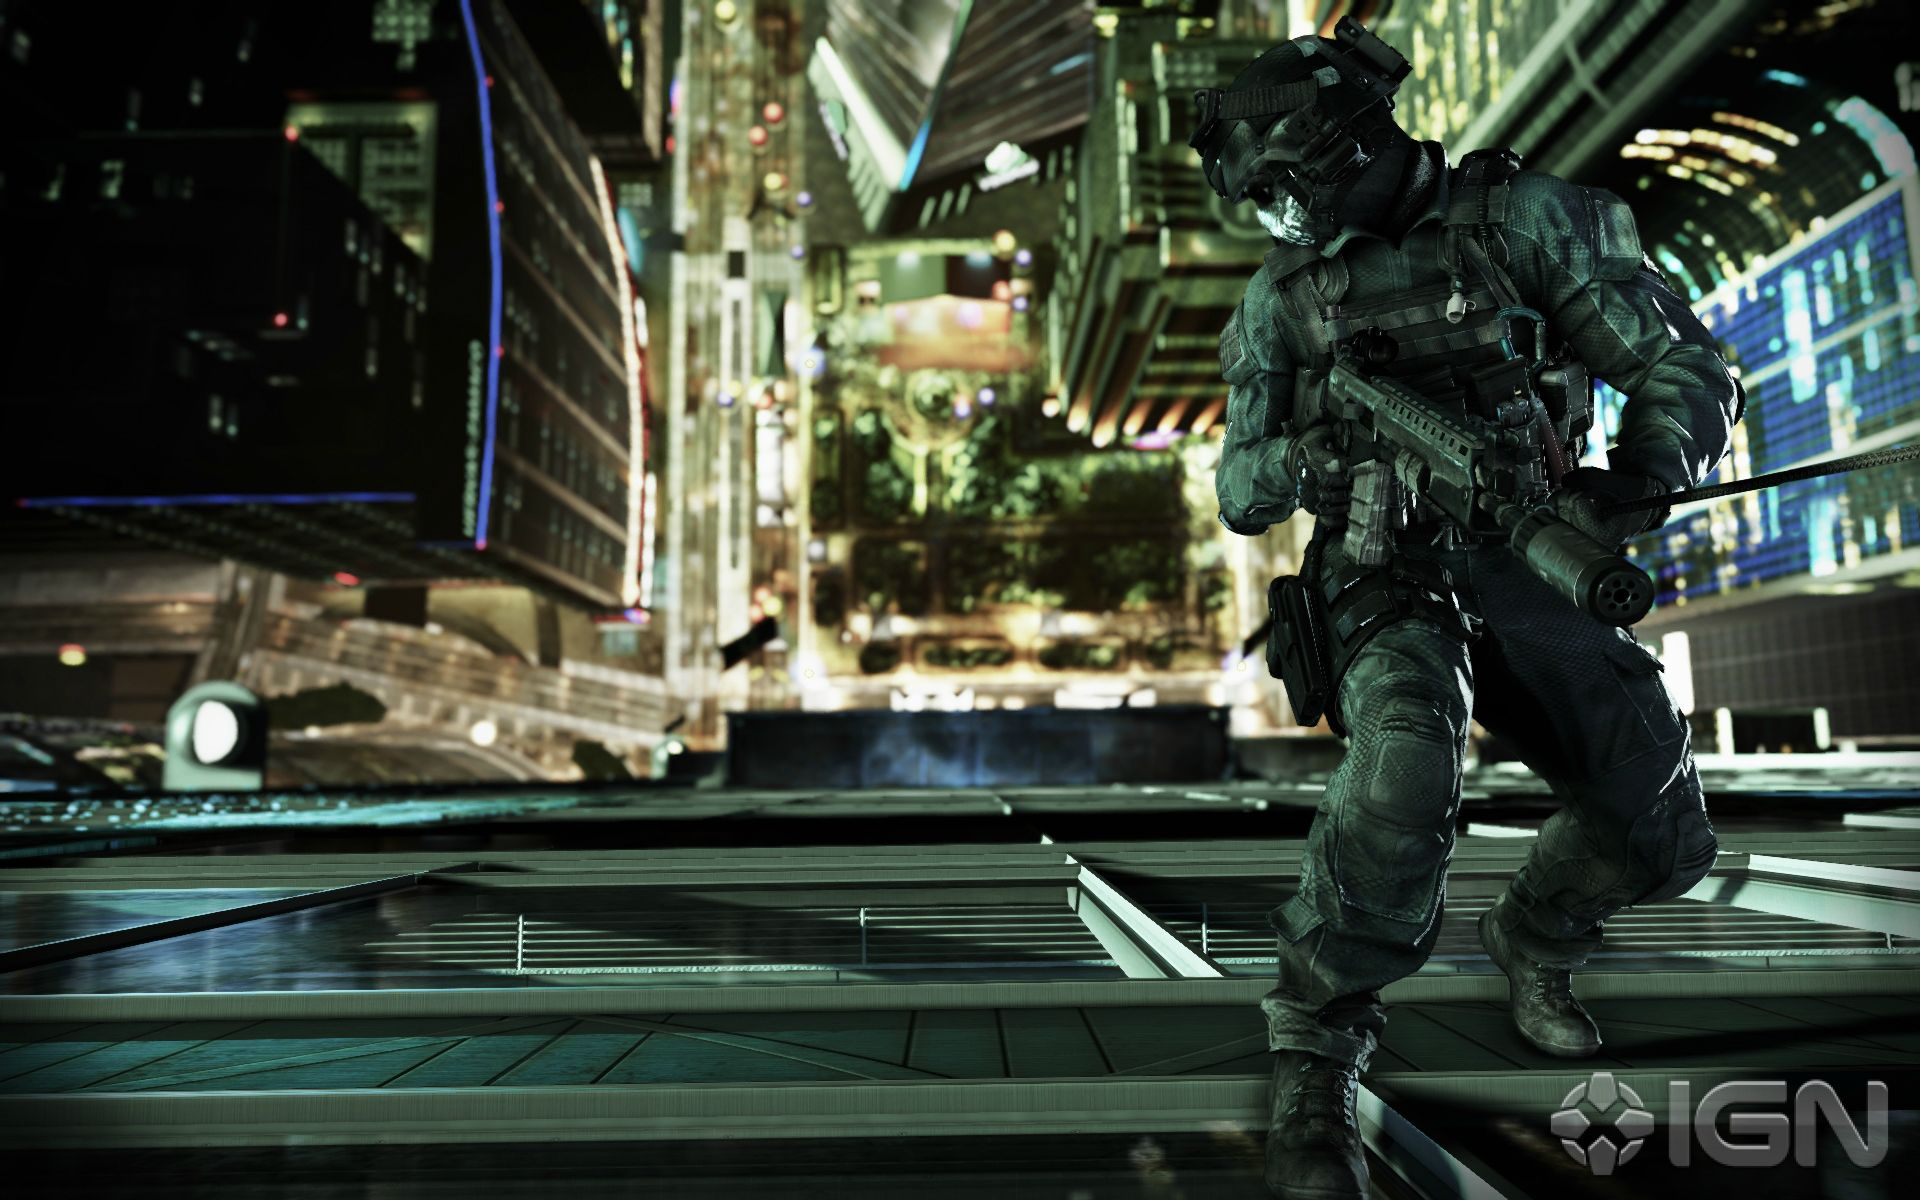 E3 2013 Ign Showcases Brand New Call Of Duty Ghosts Gameplay Footage And Screenshots Exp 4 All